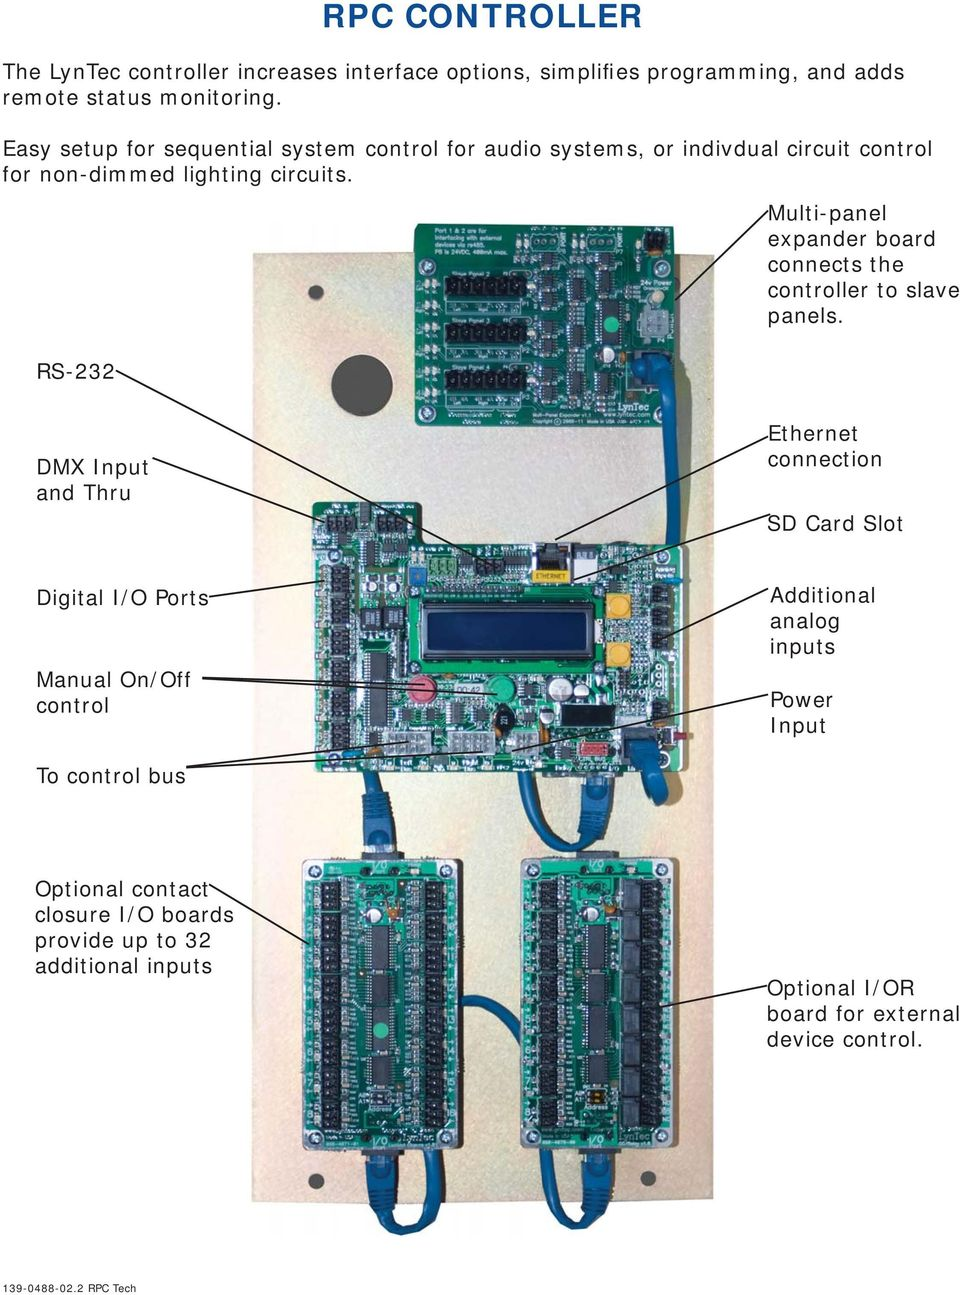 RS-232 Multi-panel expander board connects the controller to slave panels.